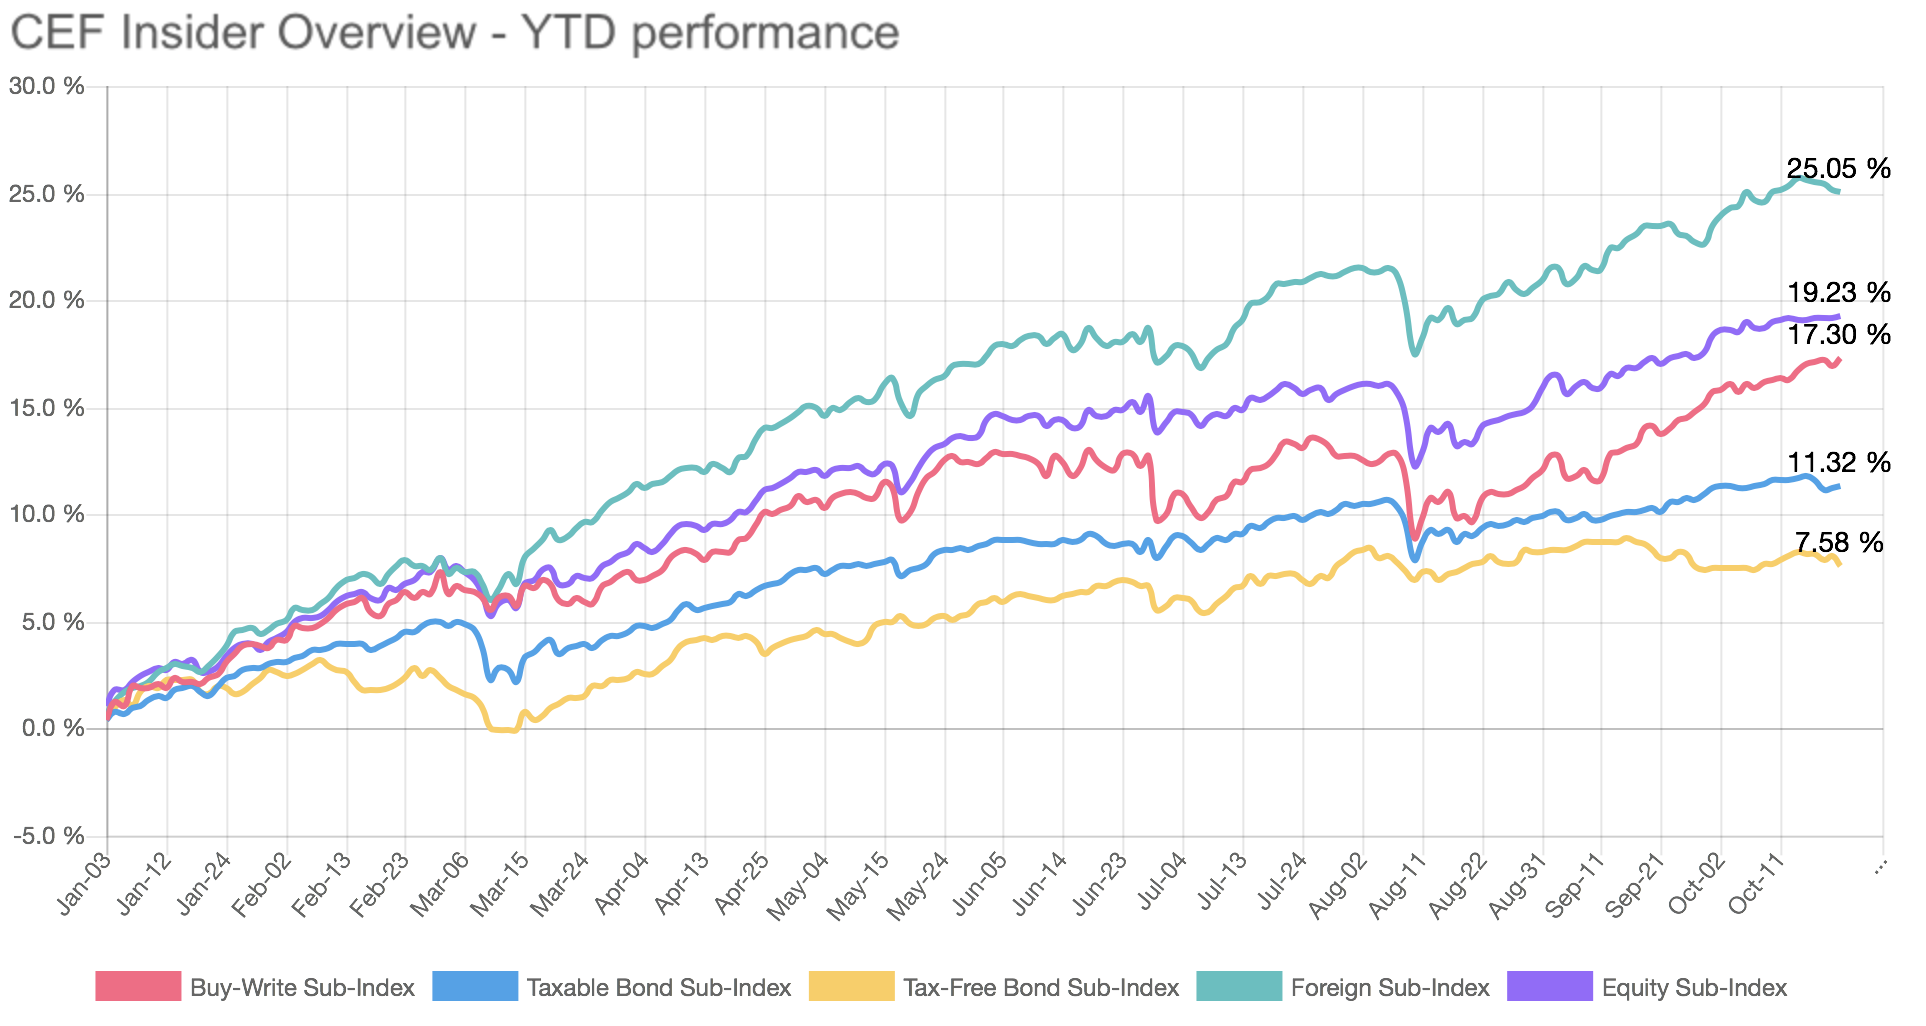 Pimco and gabelli fund shake up cef weekly update seeking alpha the cef insider indices are seeing a bit of a pause in absolute returns after reaching recent ytd highs with the buy write sub index gaining slightly biocorpaavc Image collections